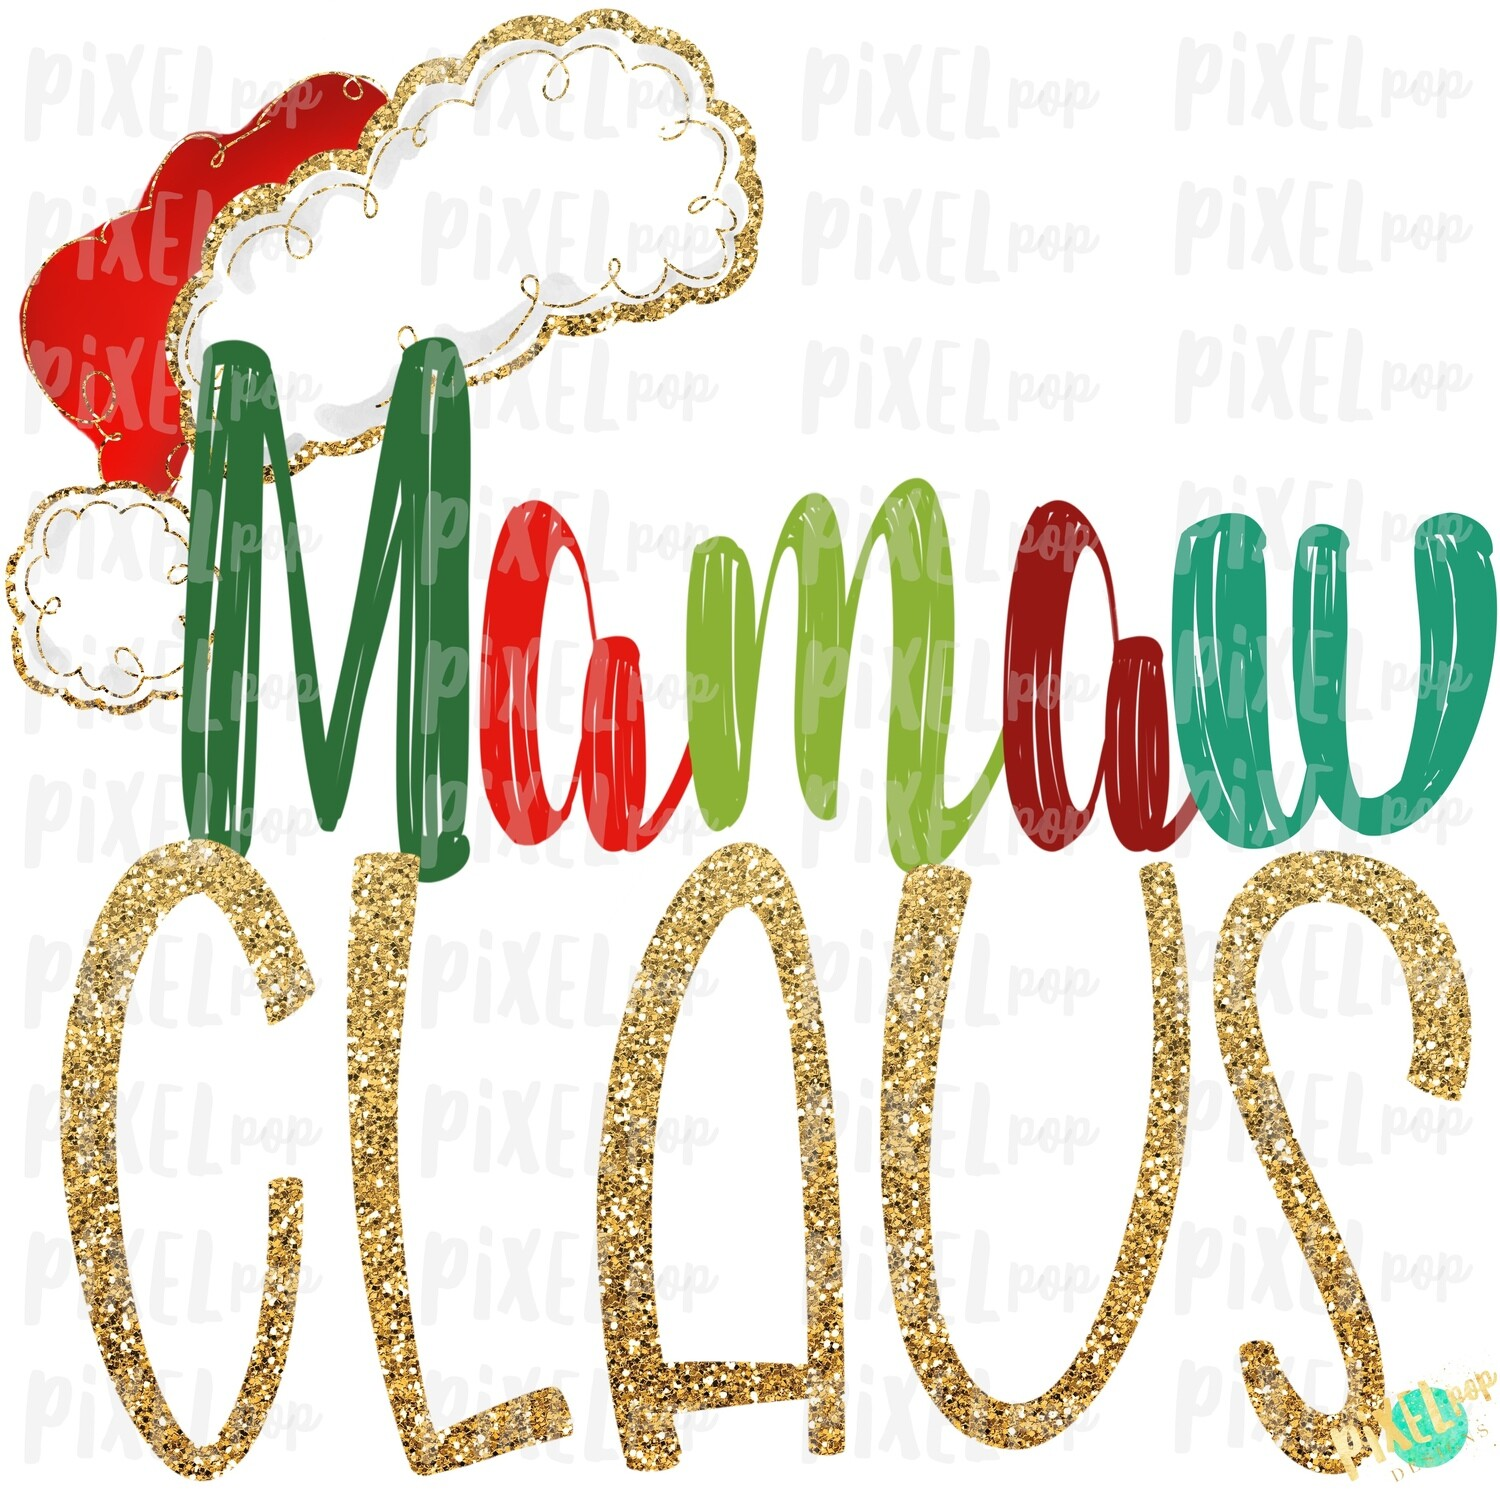 Mamaw Claus Santa Hat Digital Sublimation Art | Drawn Design | Sublimation PNG | Digital Download | Printable Artwork | Art